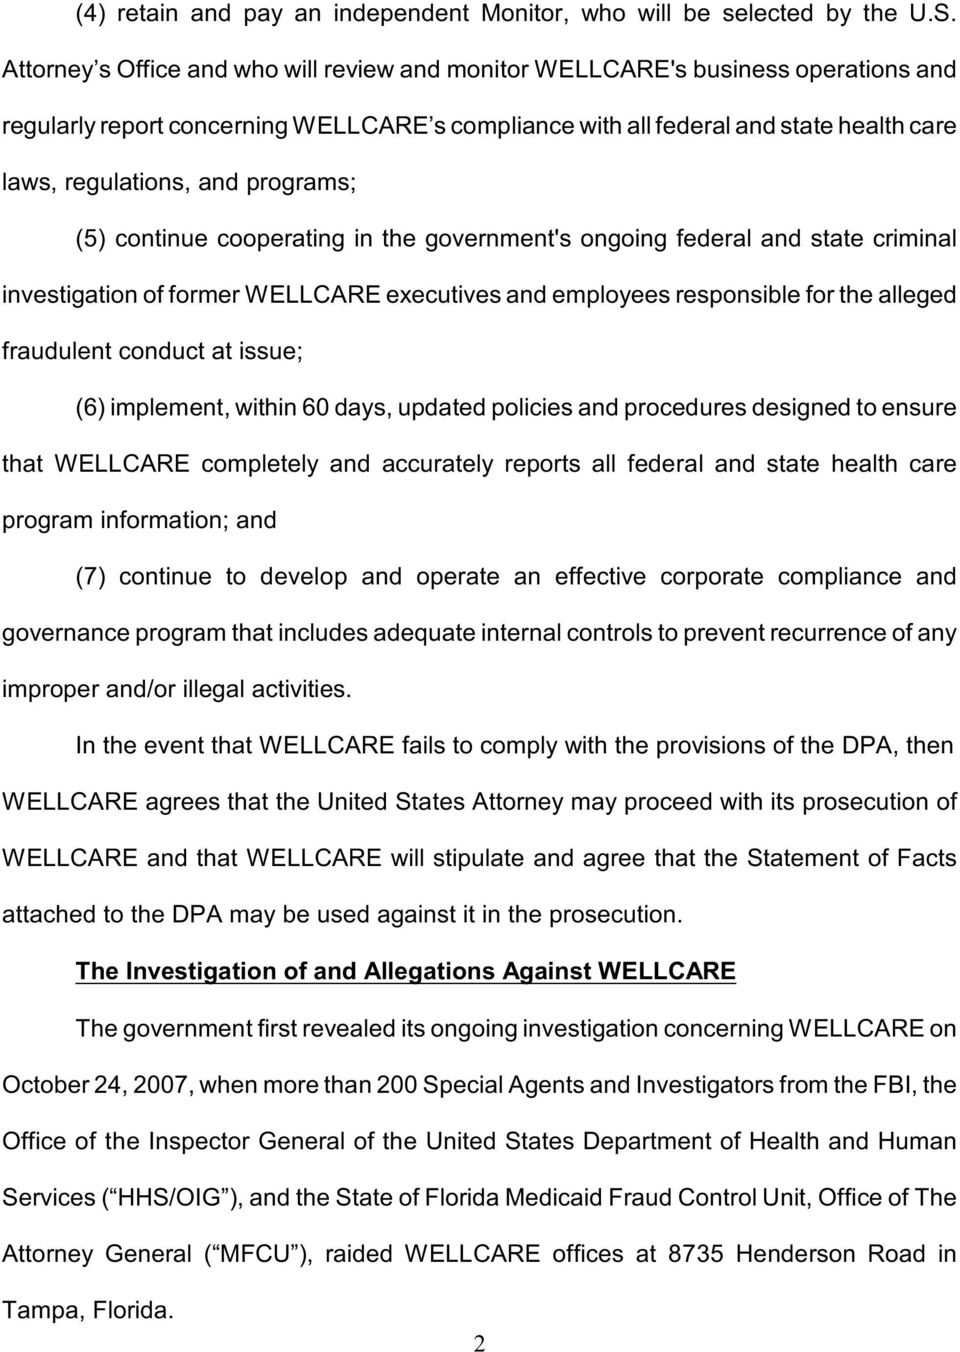 programs; (5) continue cooperating in the government's ongoing federal and state criminal investigation of former WELLCARE executives and employees responsible for the alleged fraudulent conduct at